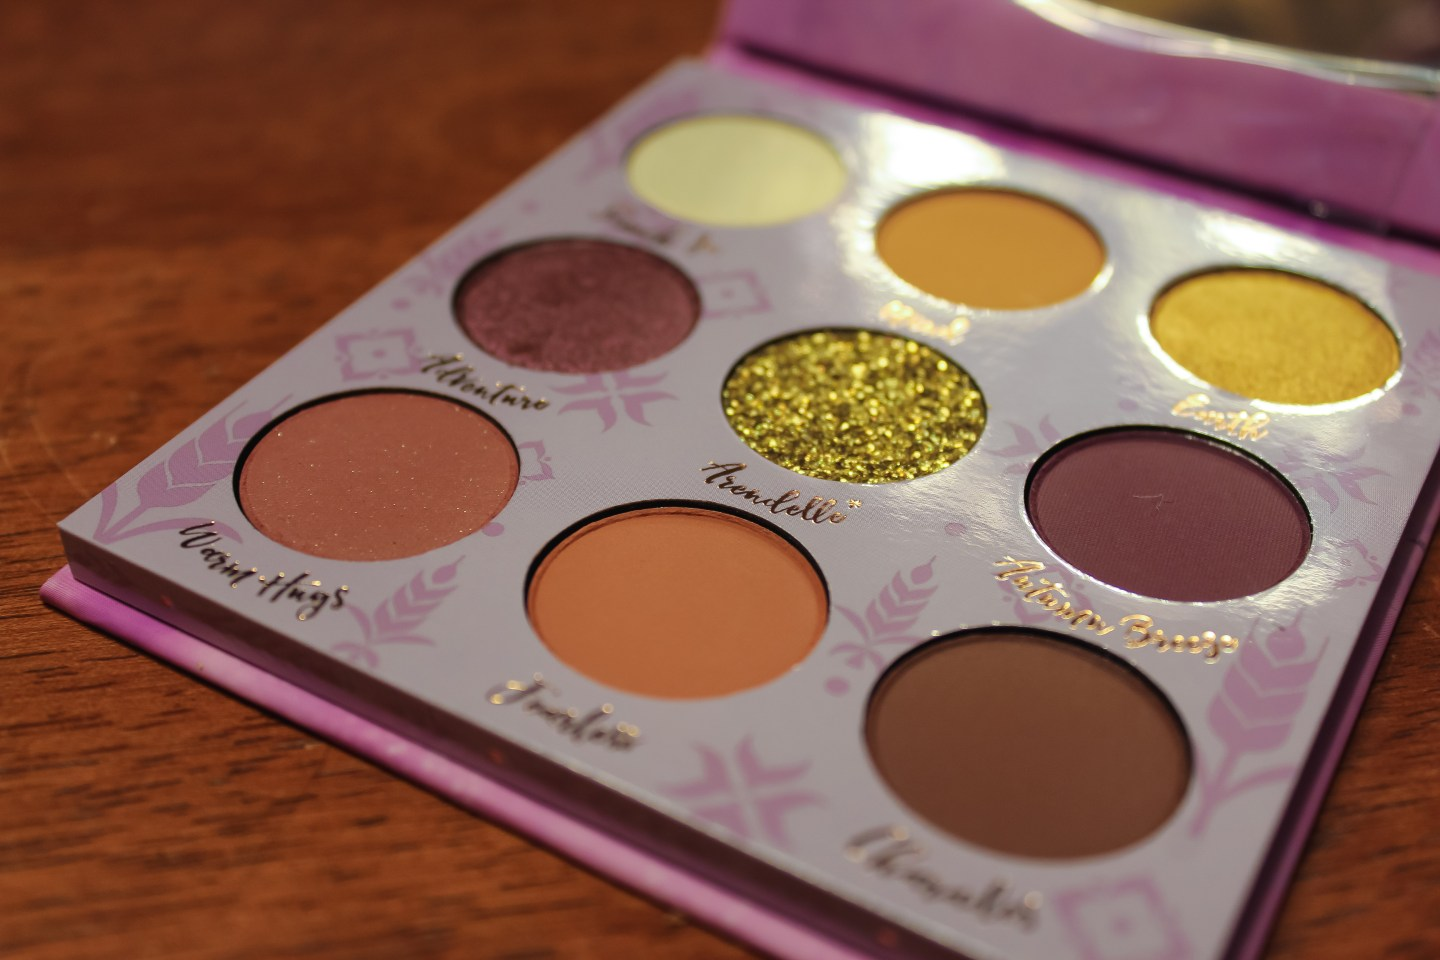 Are You the One I've Been Looking for? Overview of the ColourPop x Disney Frozen II Anna and Elsa Shadow Palettes 2